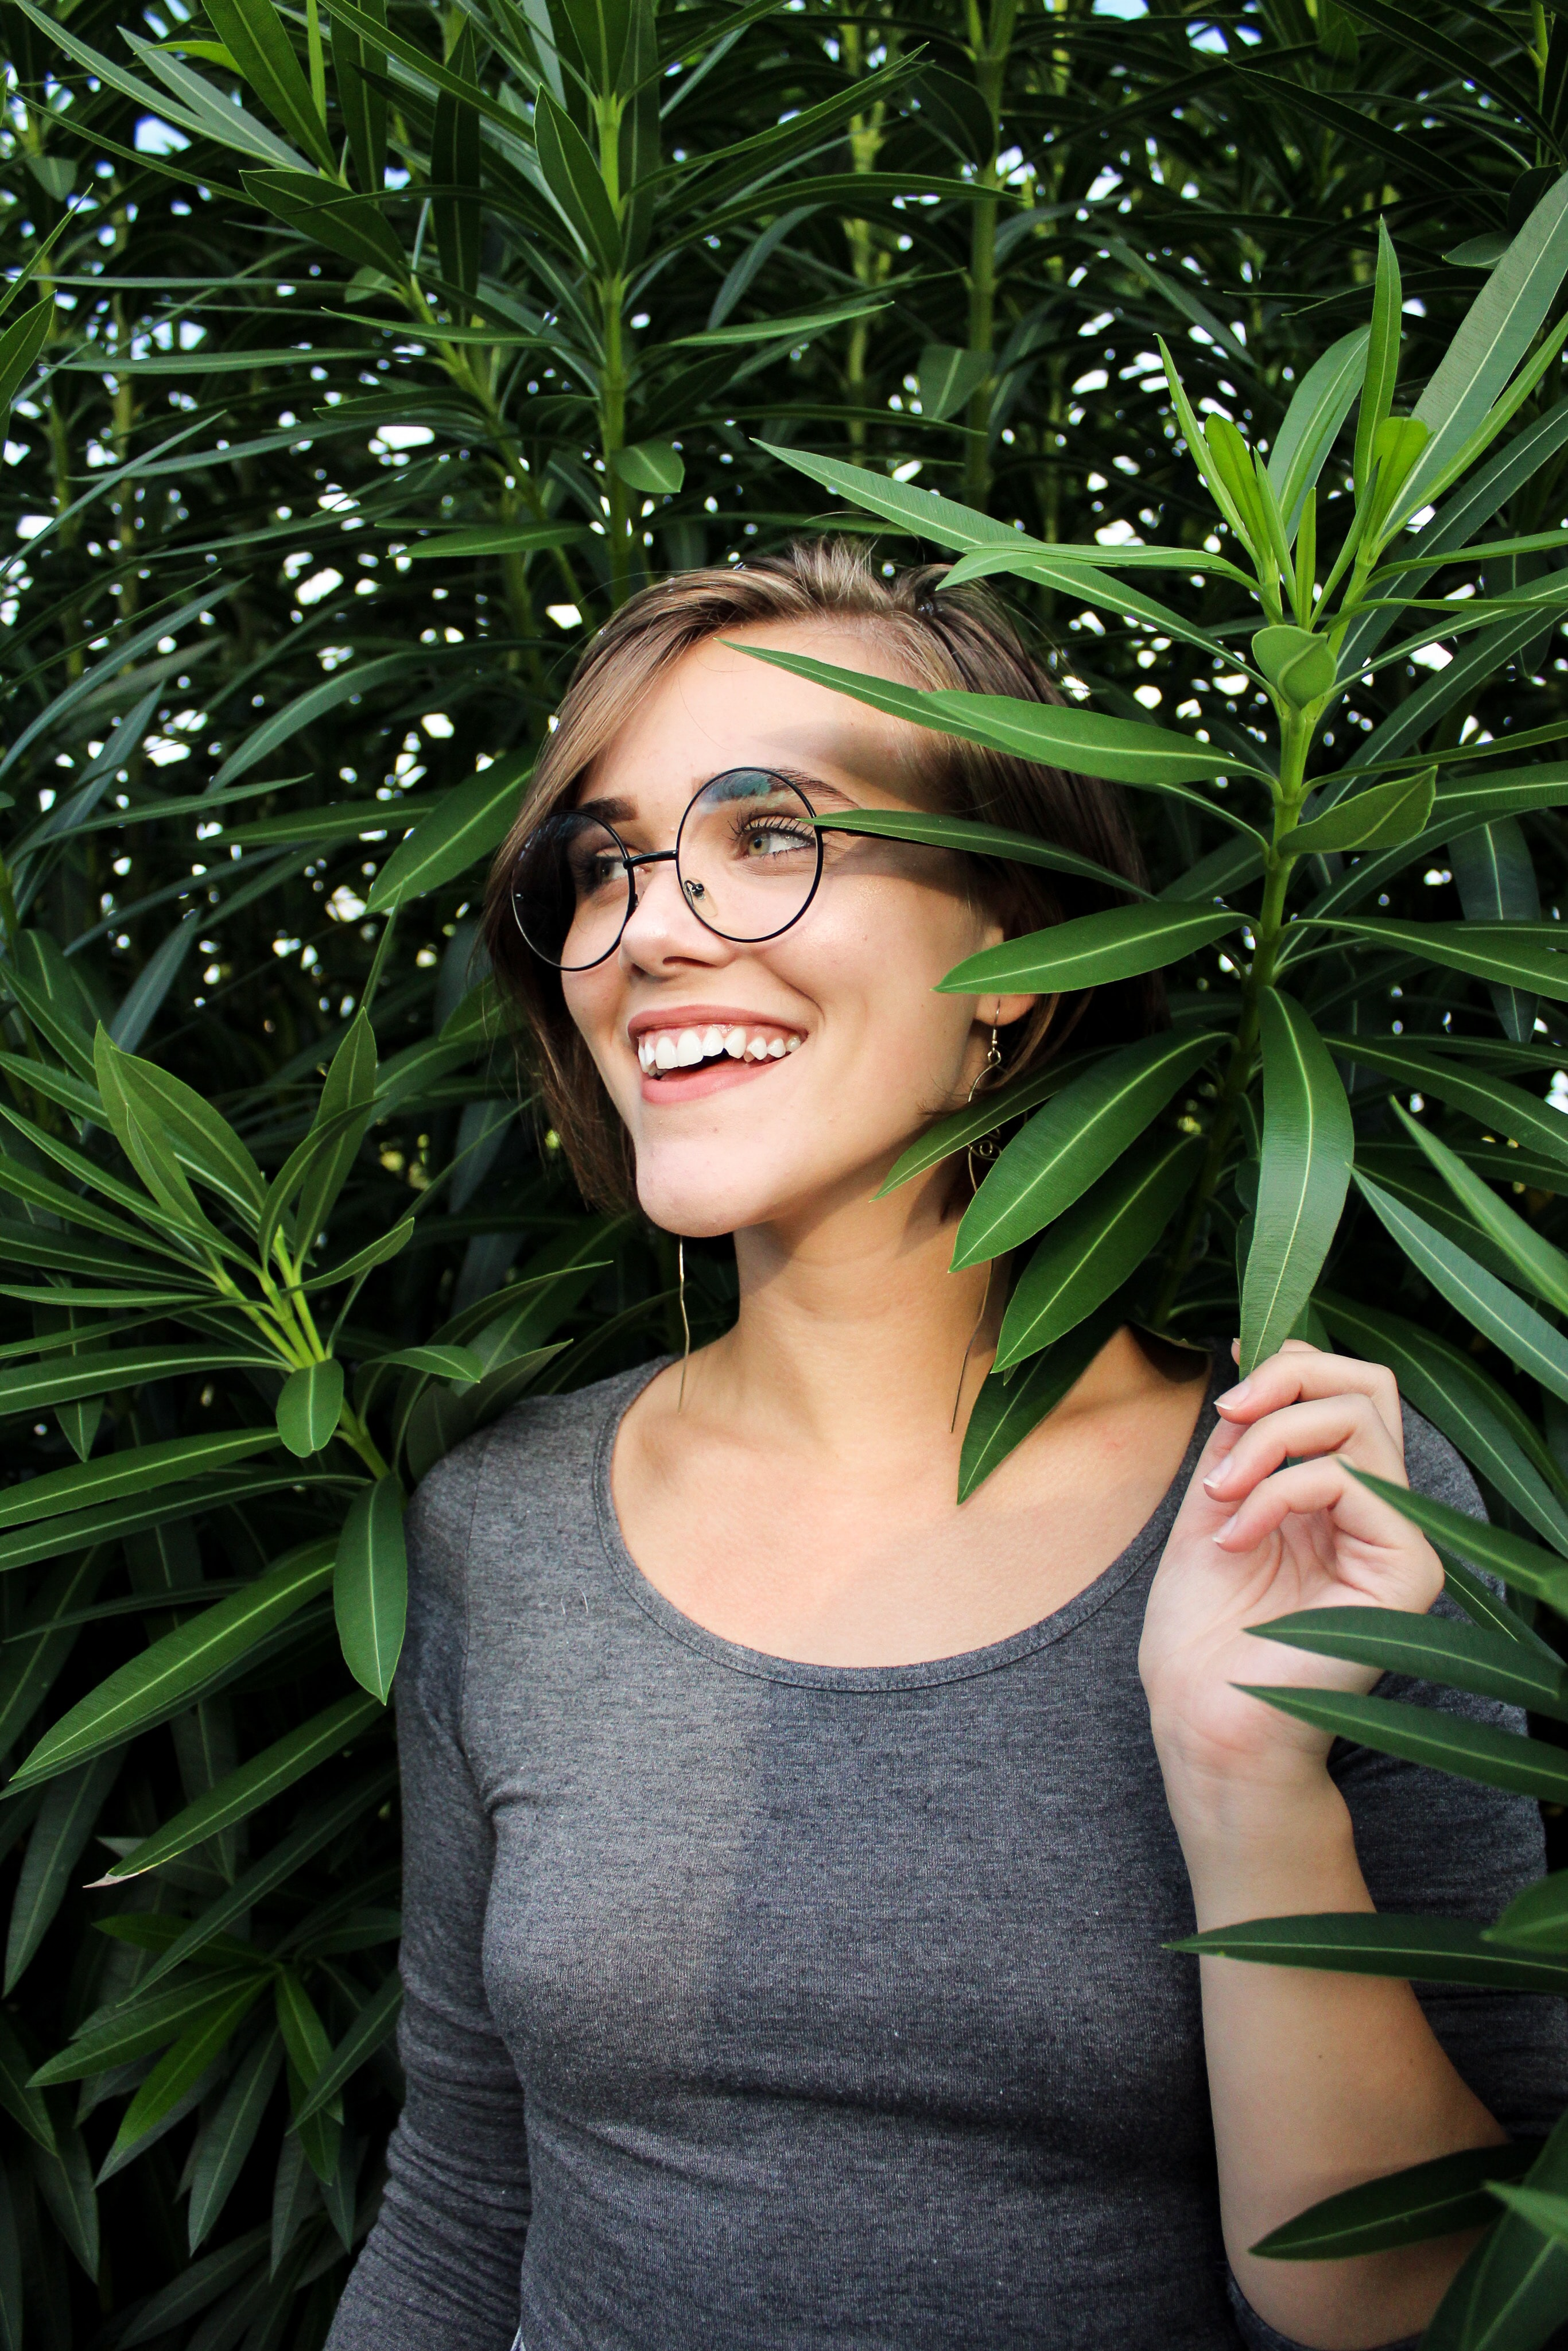 woman holding a green-leafed plant smiling during daytime